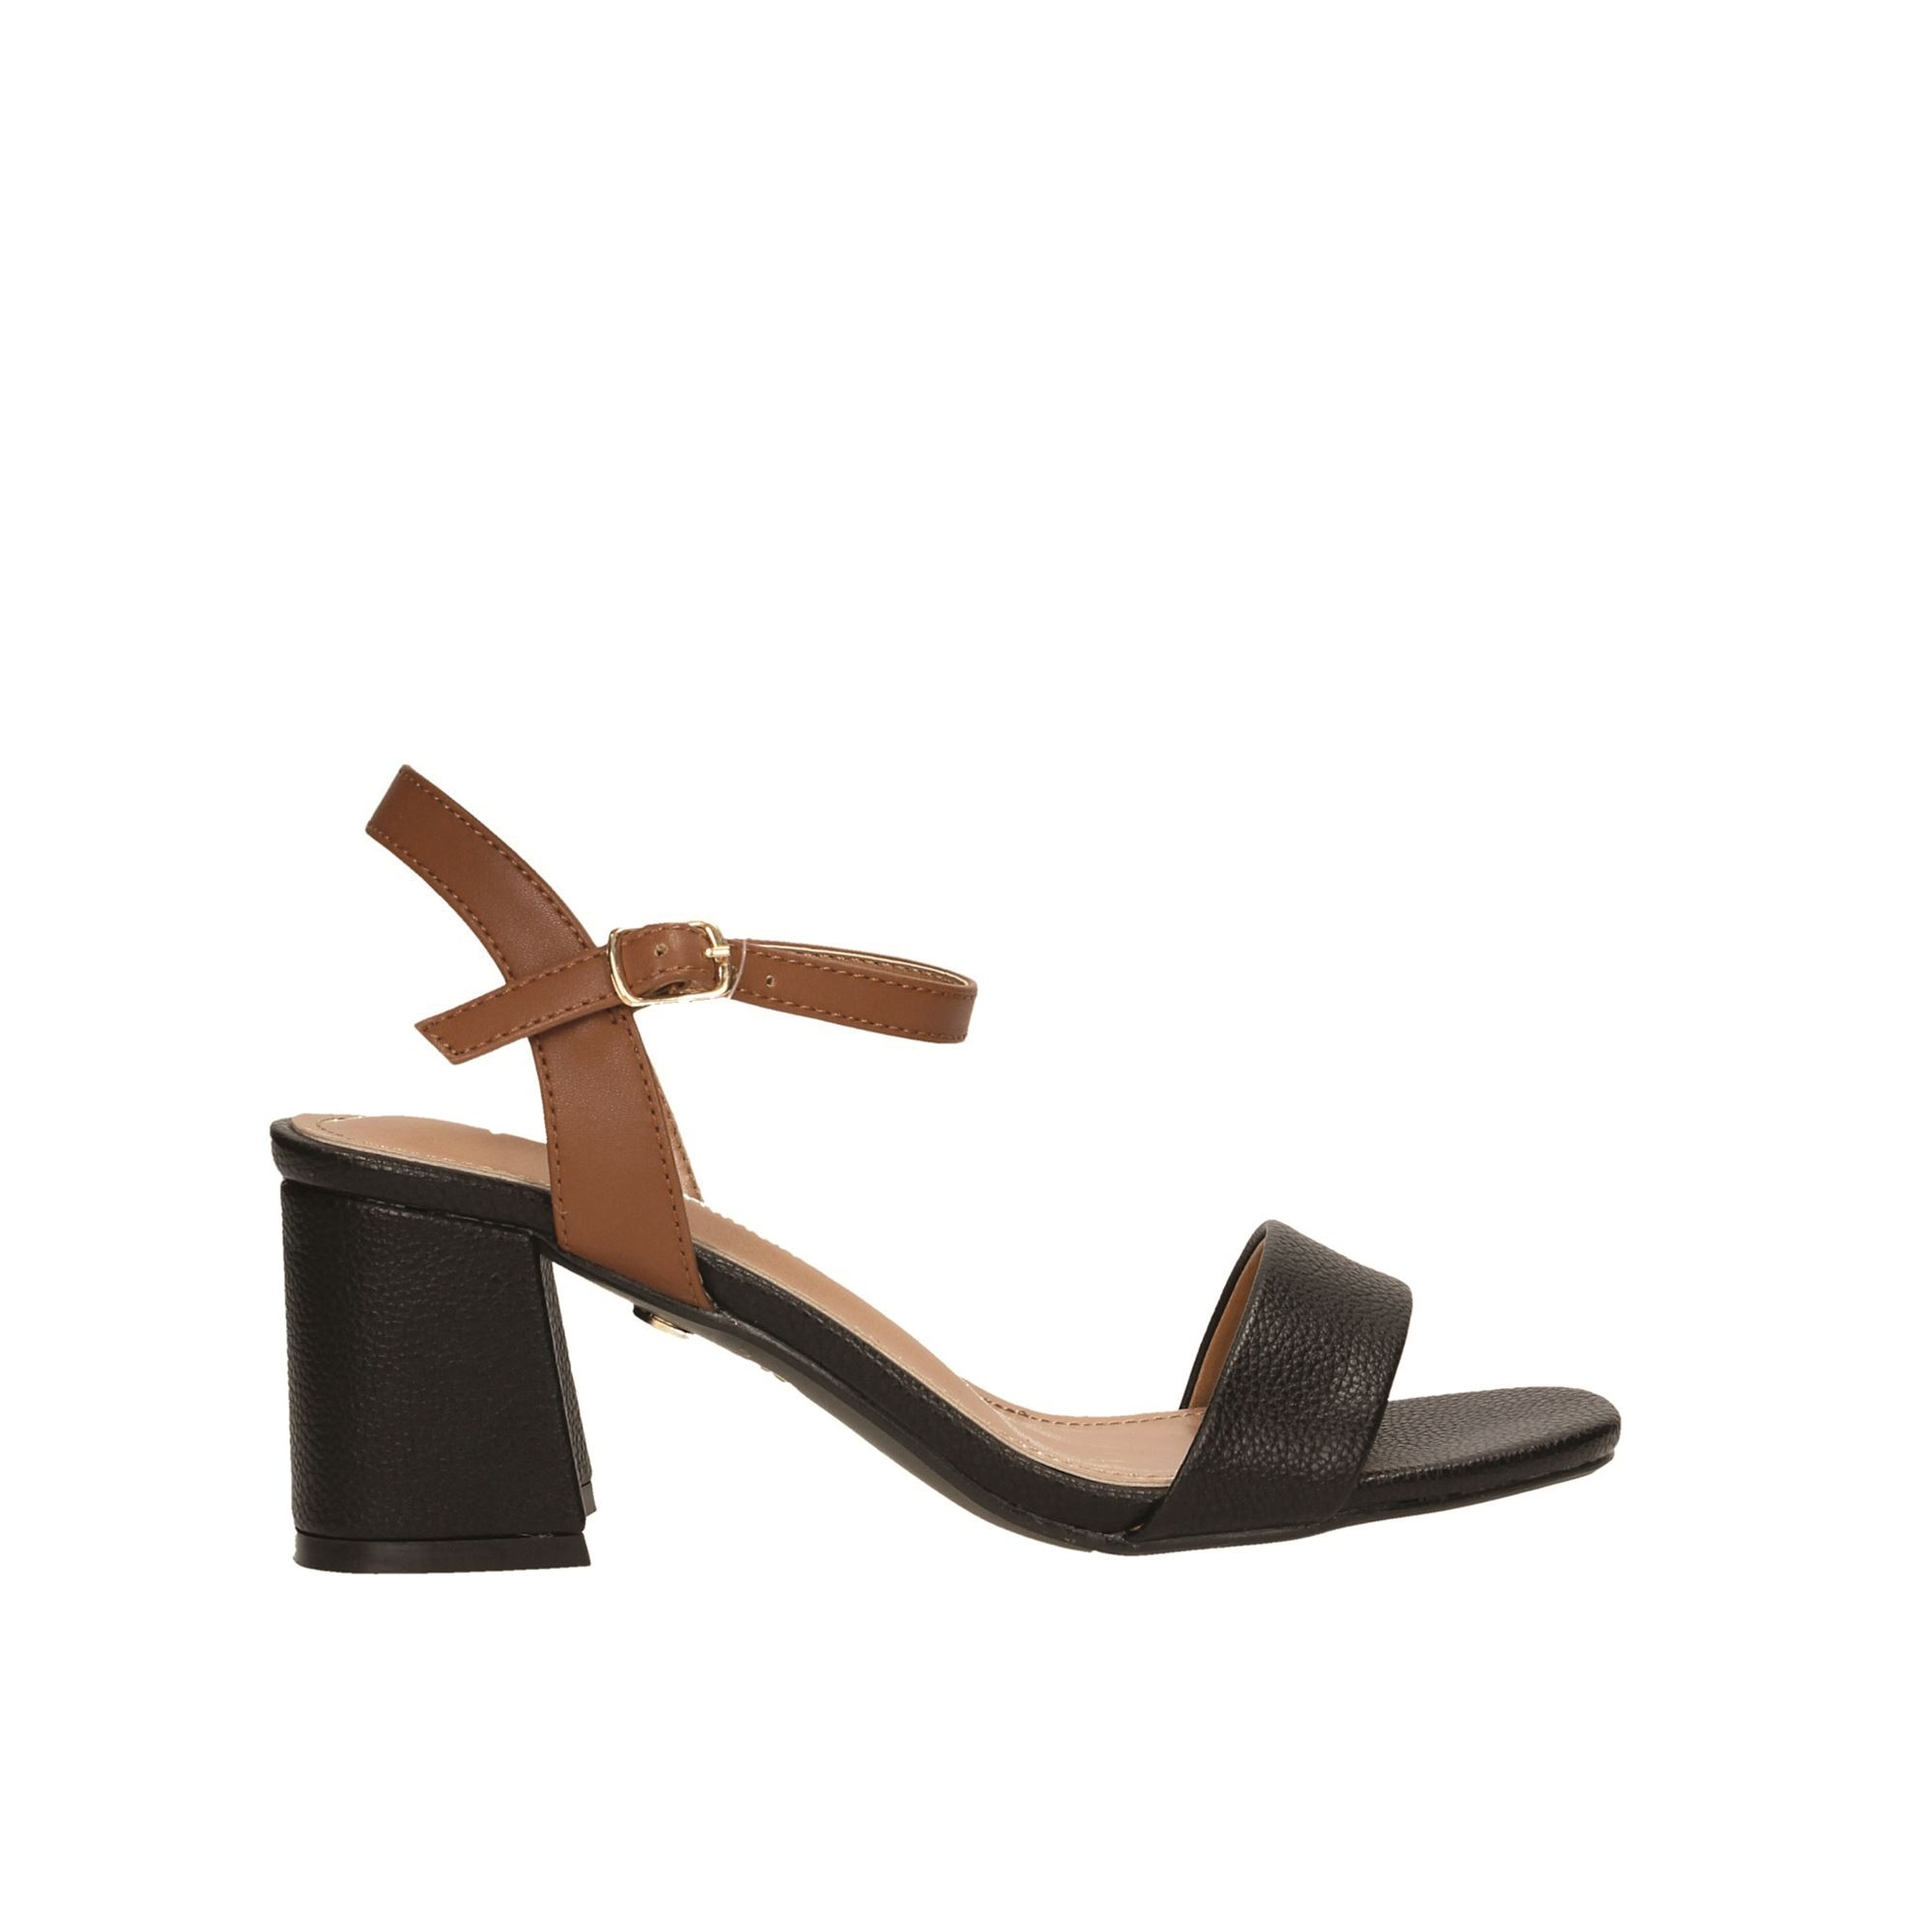 Tata Italia Shoes Woman Sandali Black 2692